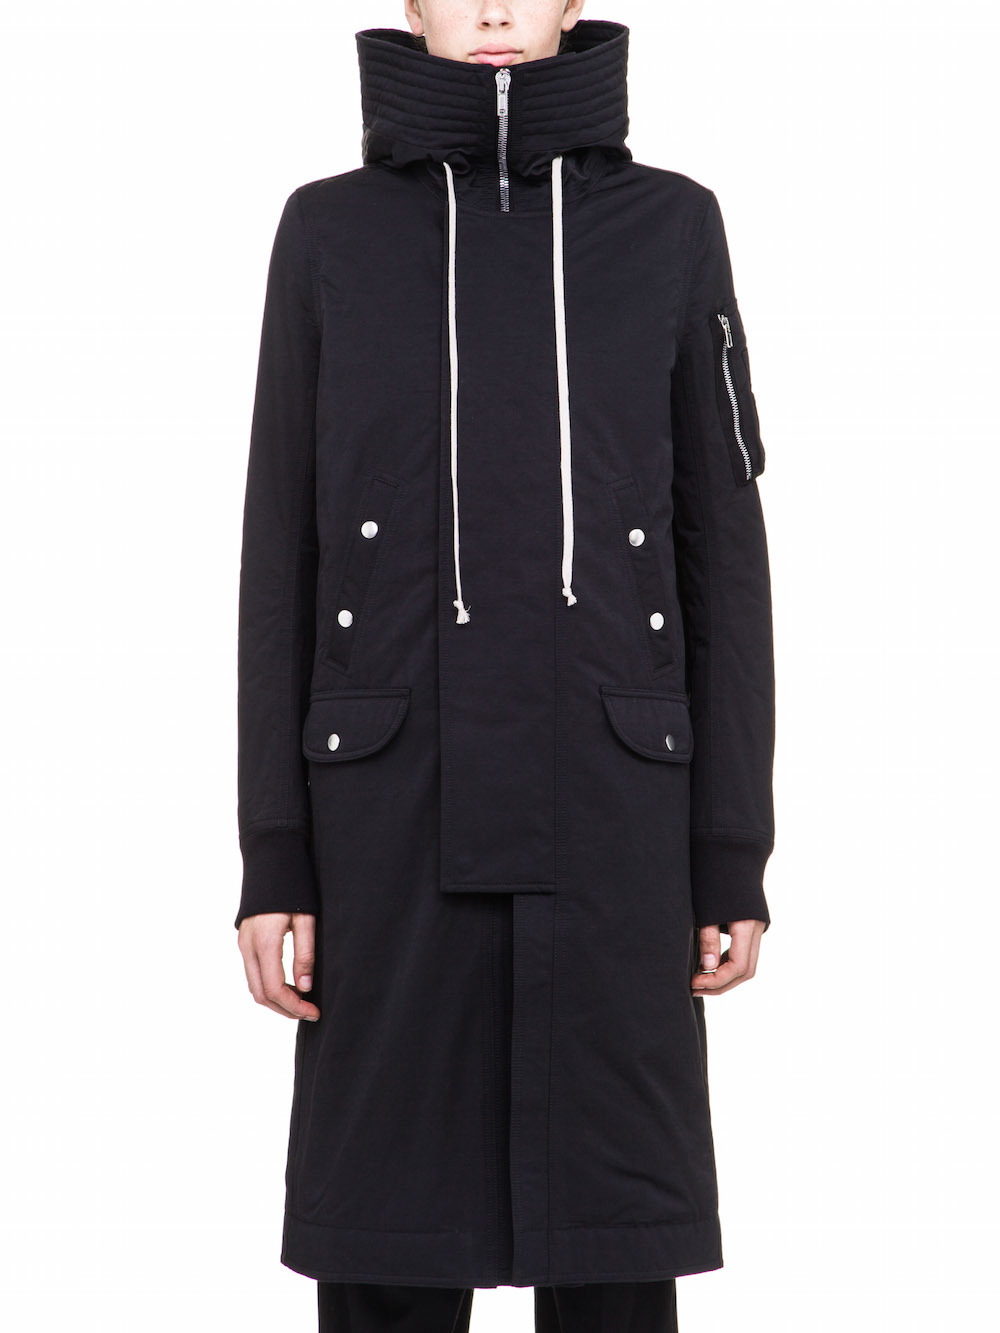 RICK OWENS HOODED BOMBER